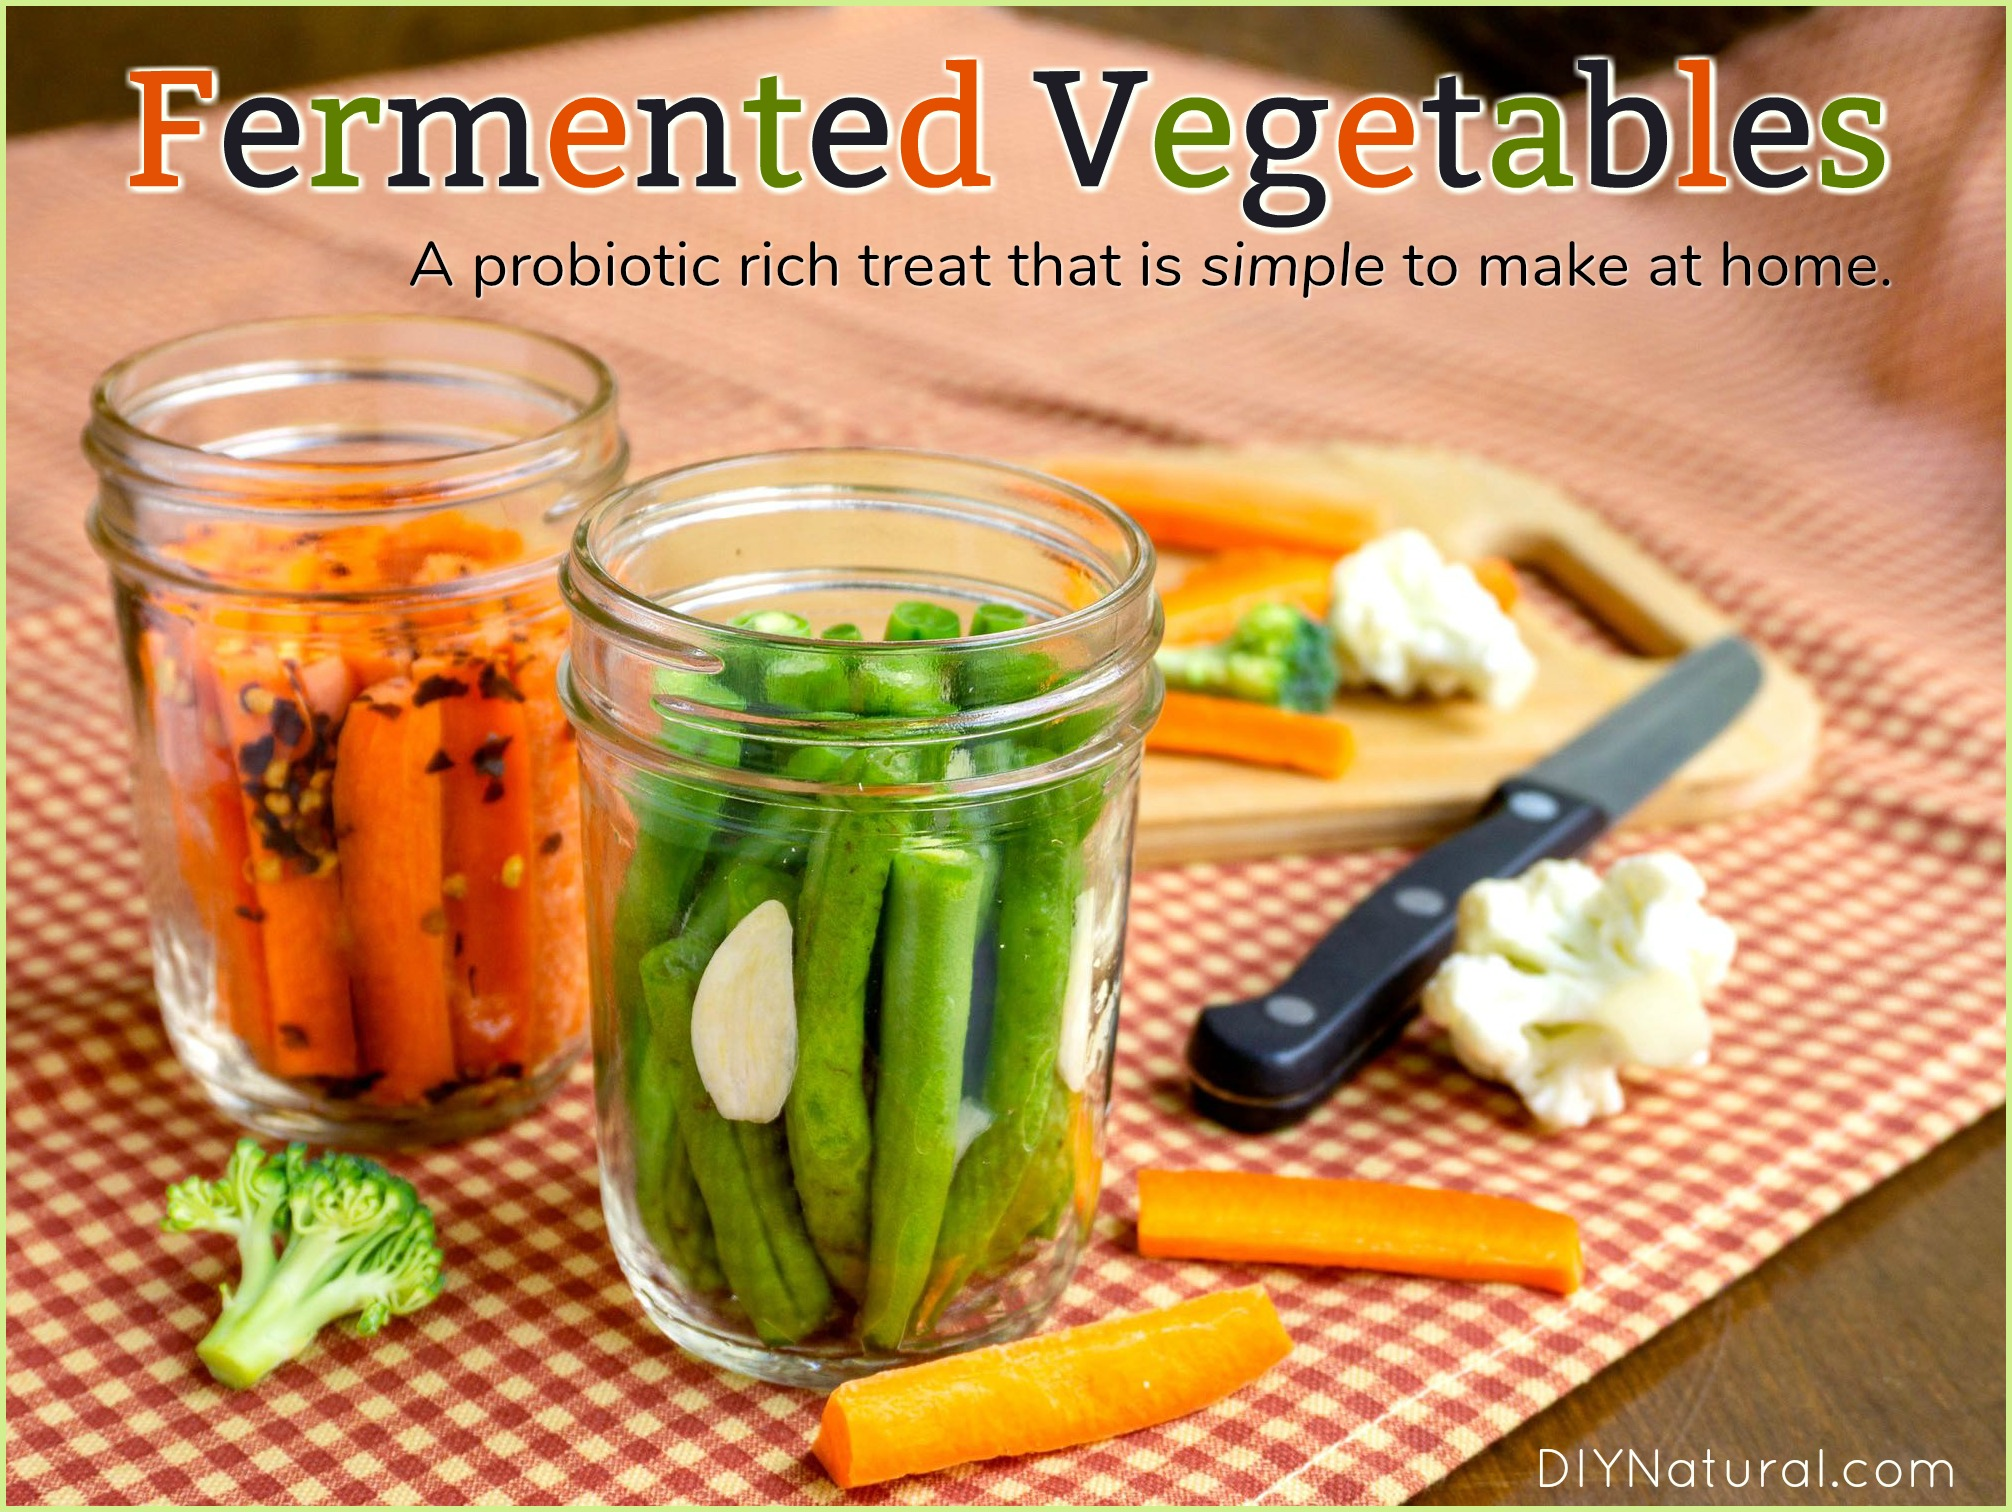 Fermented Vegetables: A Probiotic Rich Treat That is Simple to Make at Home